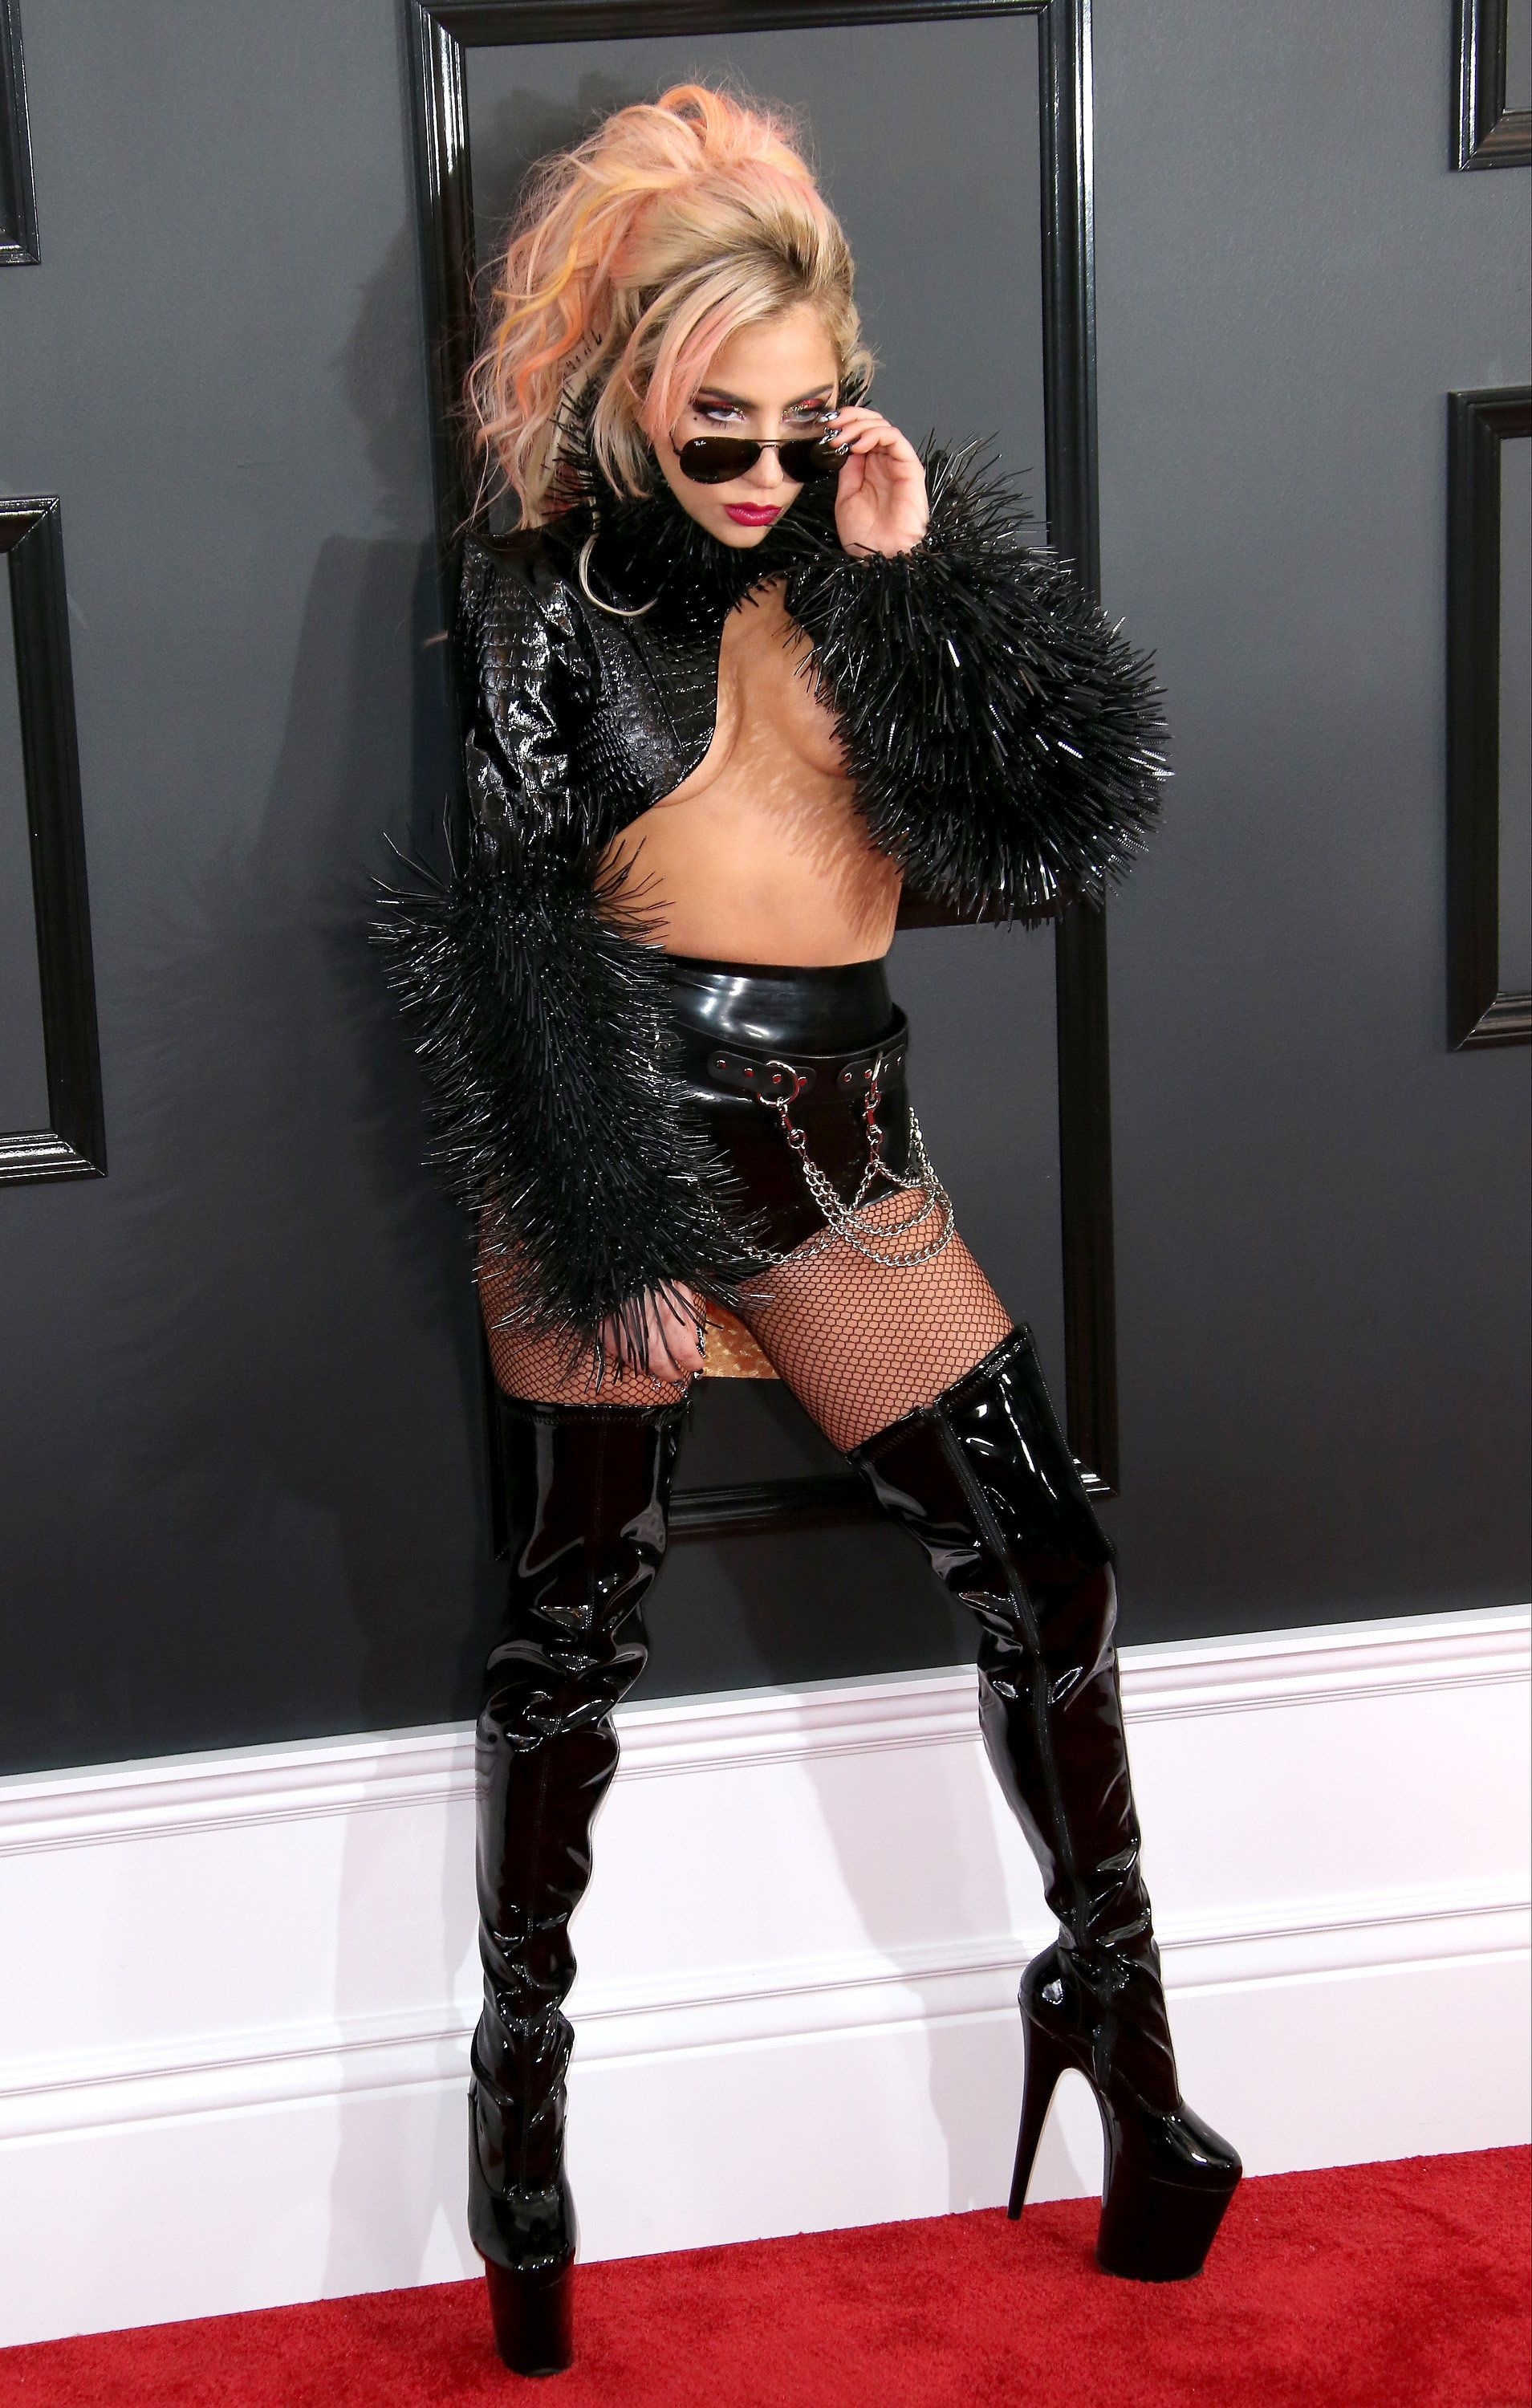 The Most Outrageous Celebrity Style Moments Of